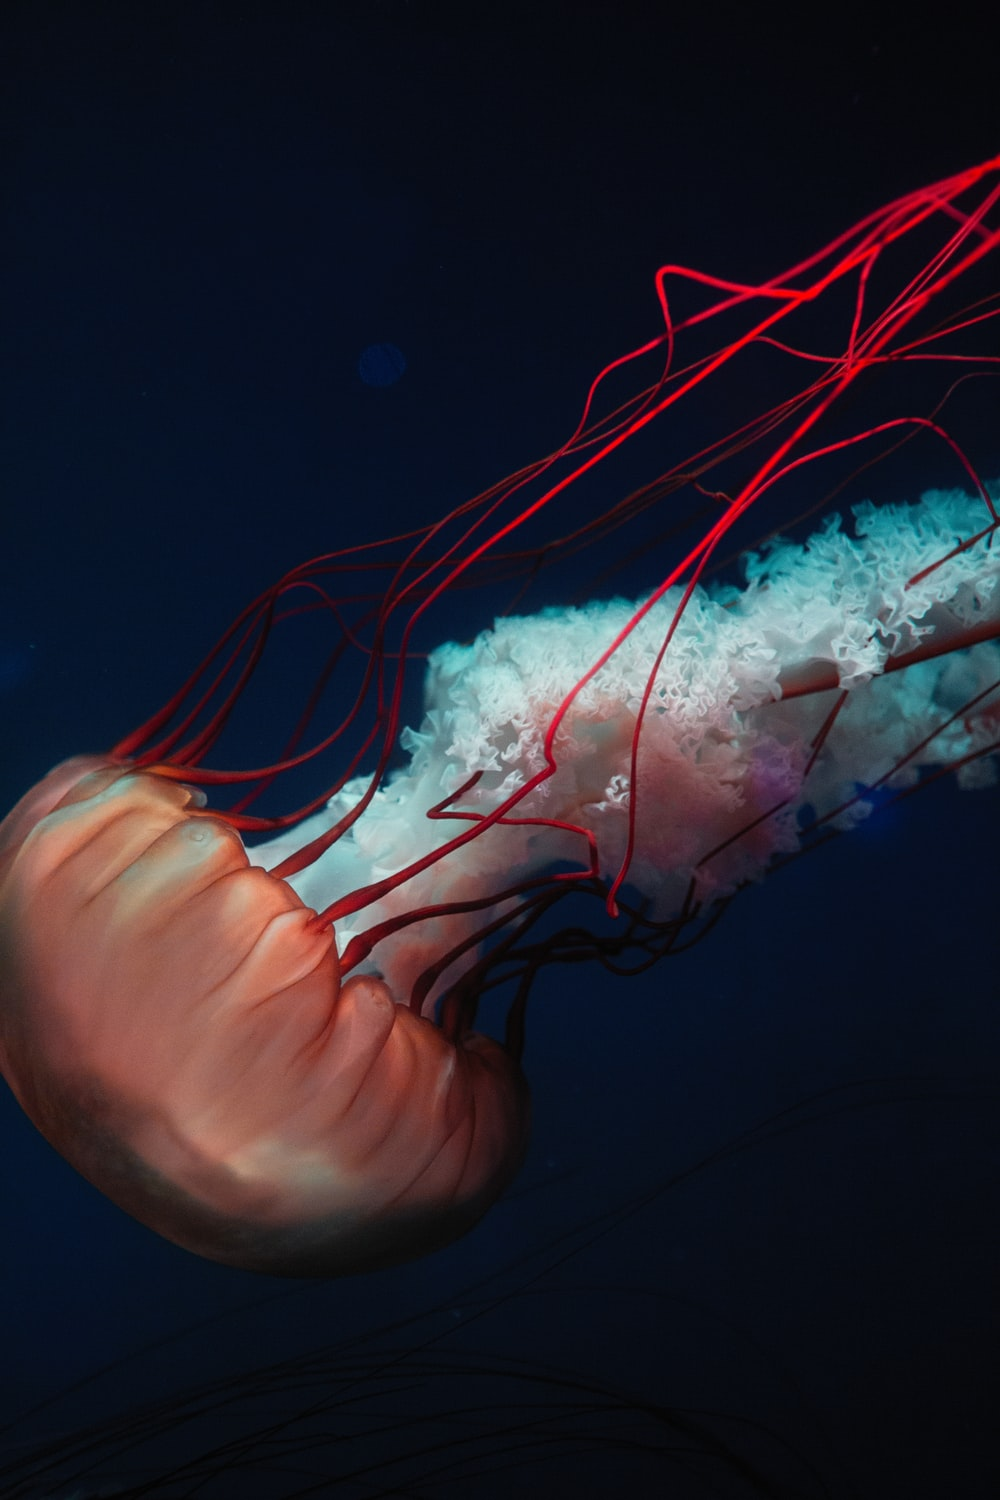 shallow focus photo of red jellyfish